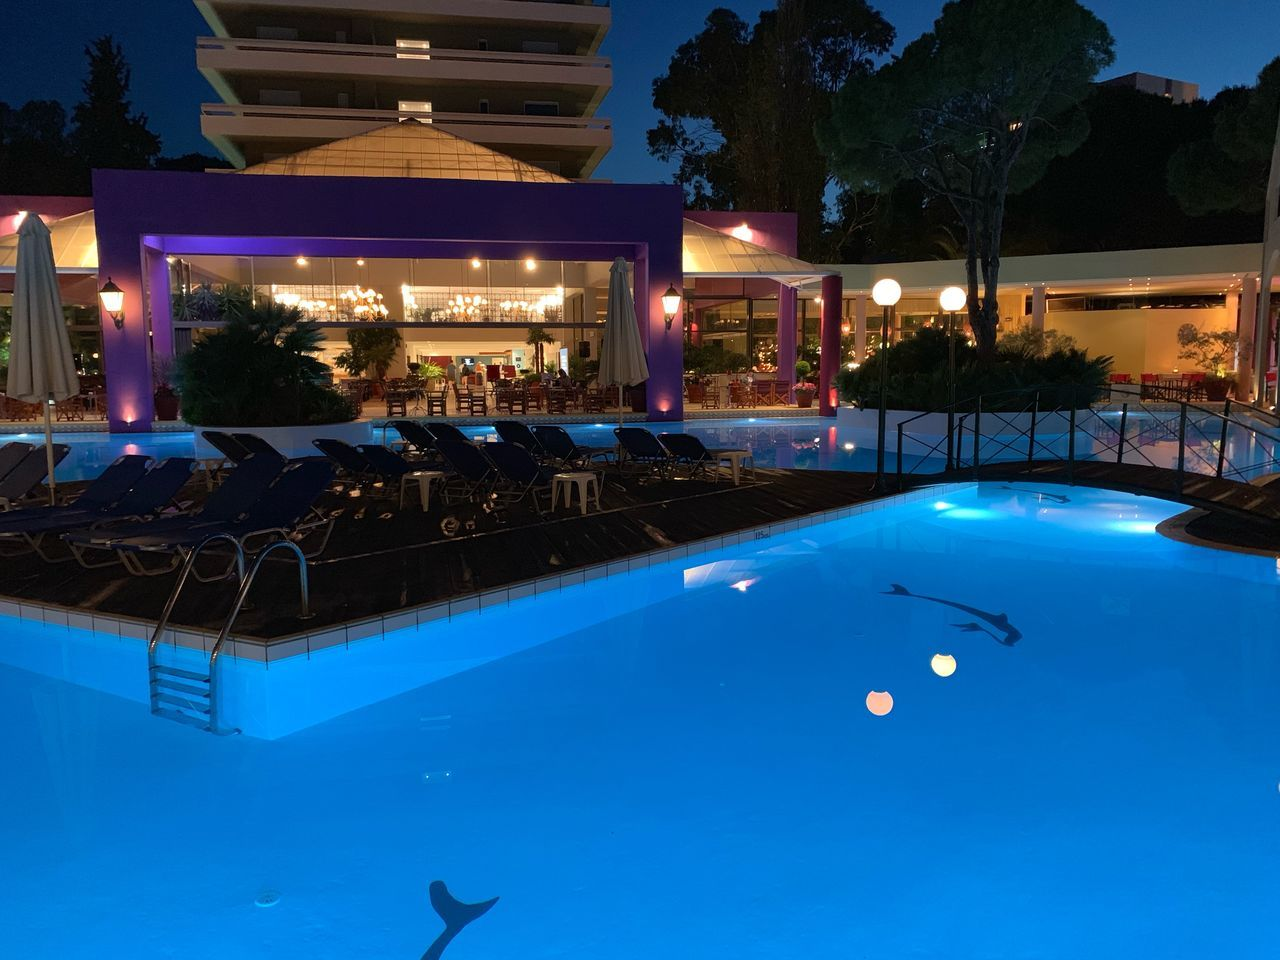 pool, swimming pool, illuminated, night, built structure, architecture, nature, lighting equipment, building exterior, water, blue, dusk, tree, no people, chair, tourist resort, outdoors, table, seat, luxury, turquoise colored